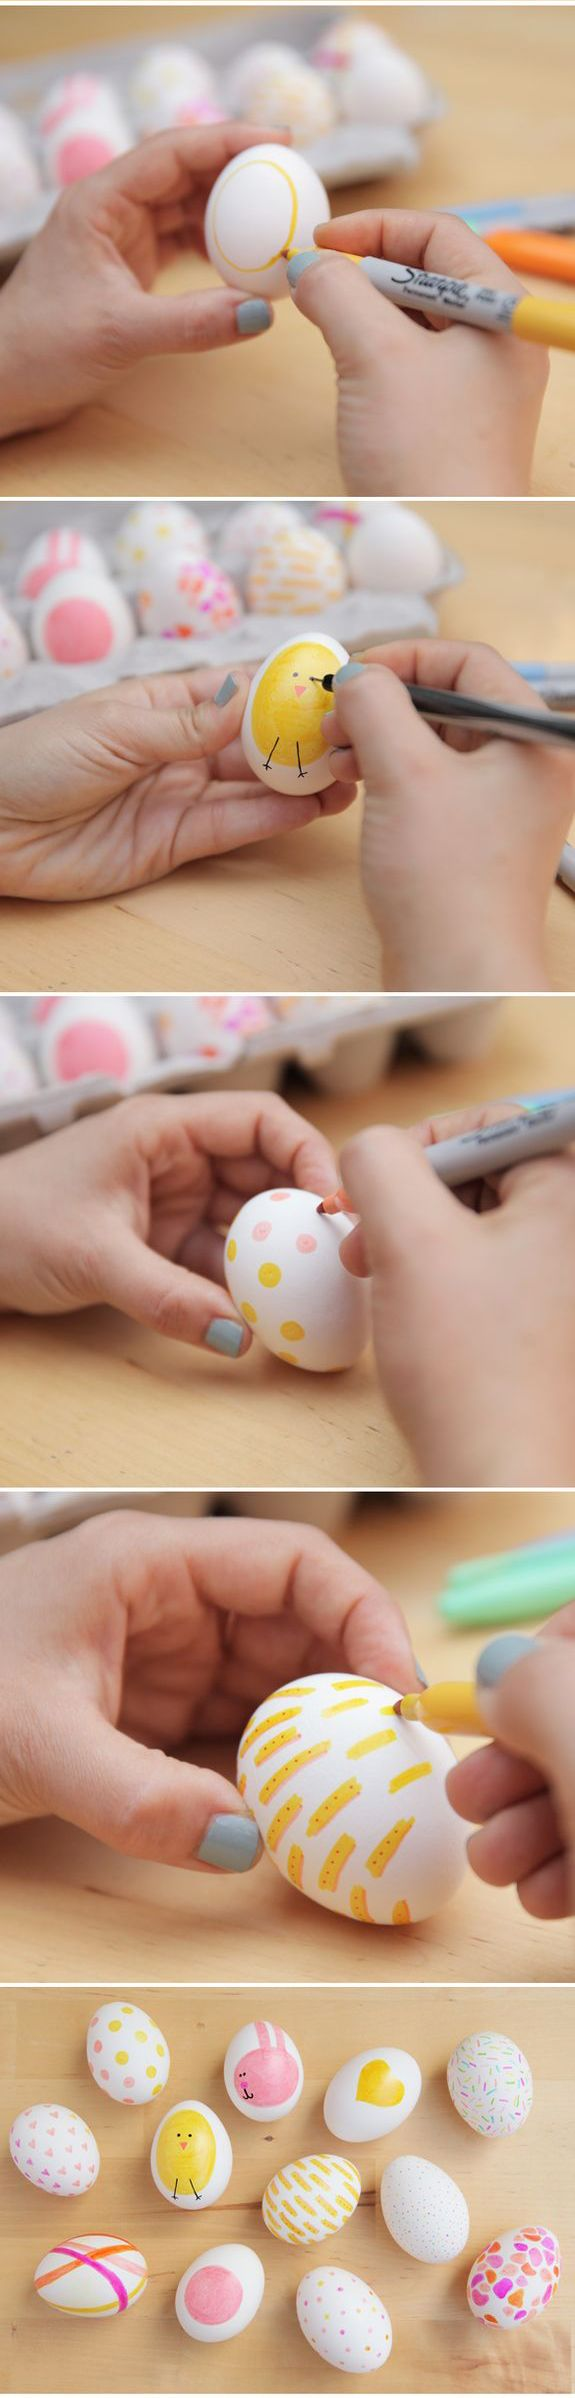 DIY Easter Eggs Sharpie Ideas - Use sharpies instead of paint for easy cleanup!